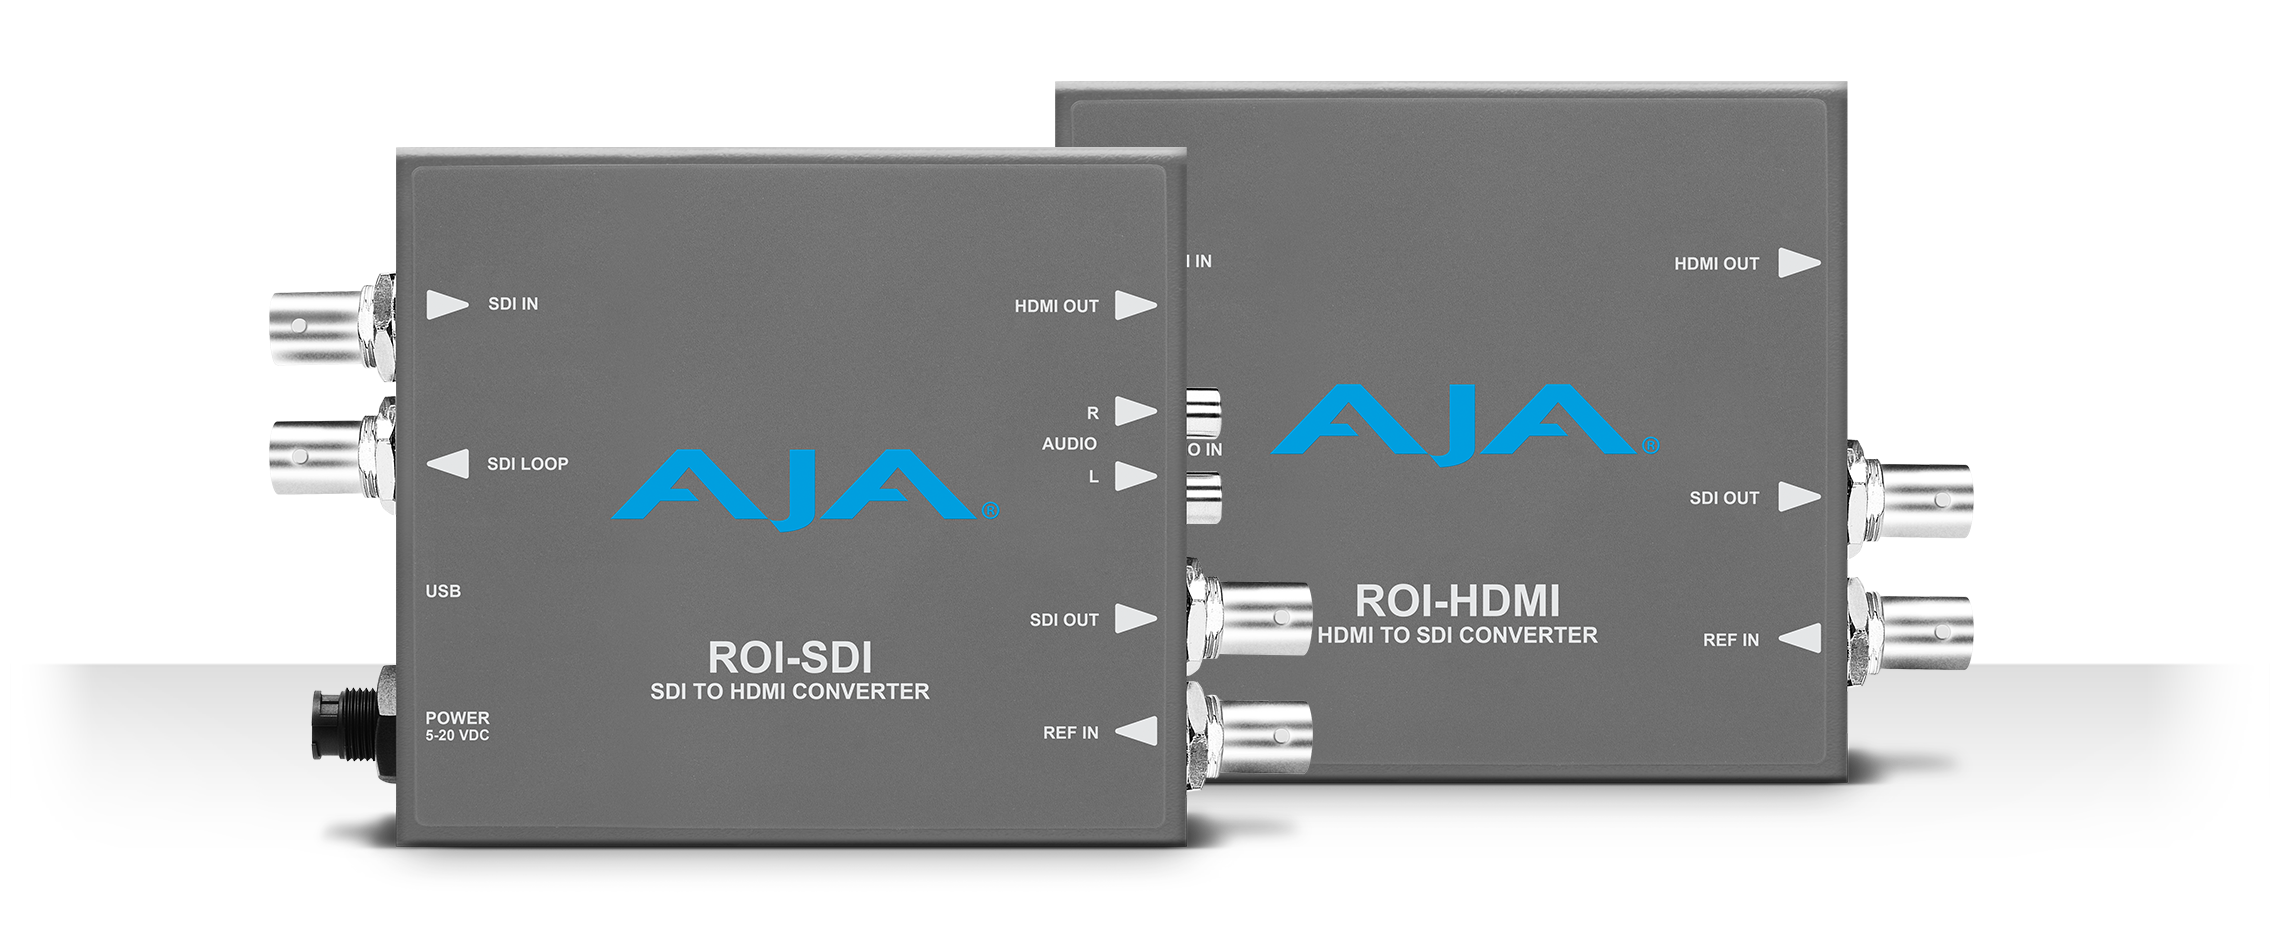 ROI - Region of Interest Converters - Scaling Converters - Products